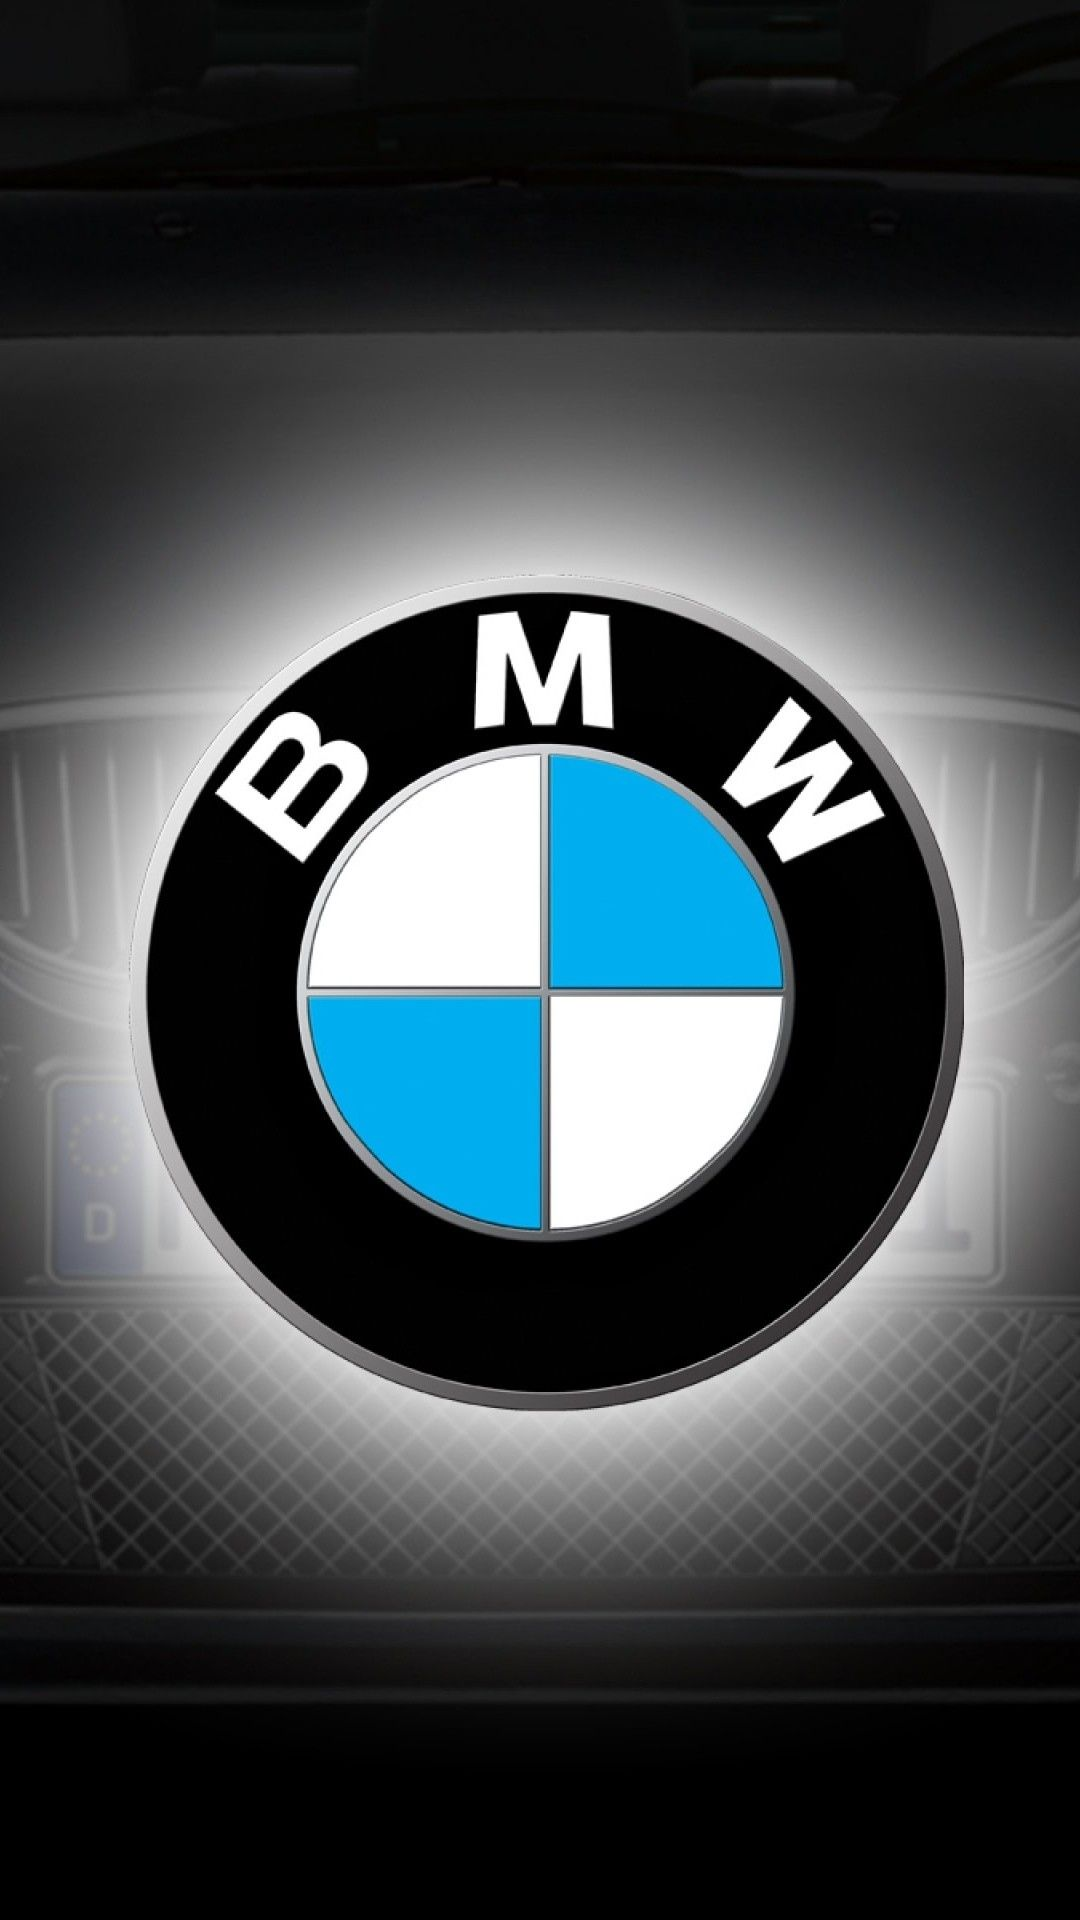 BMW Logo Insignia Android and iPhone Wallpaper Background and 1080x1920